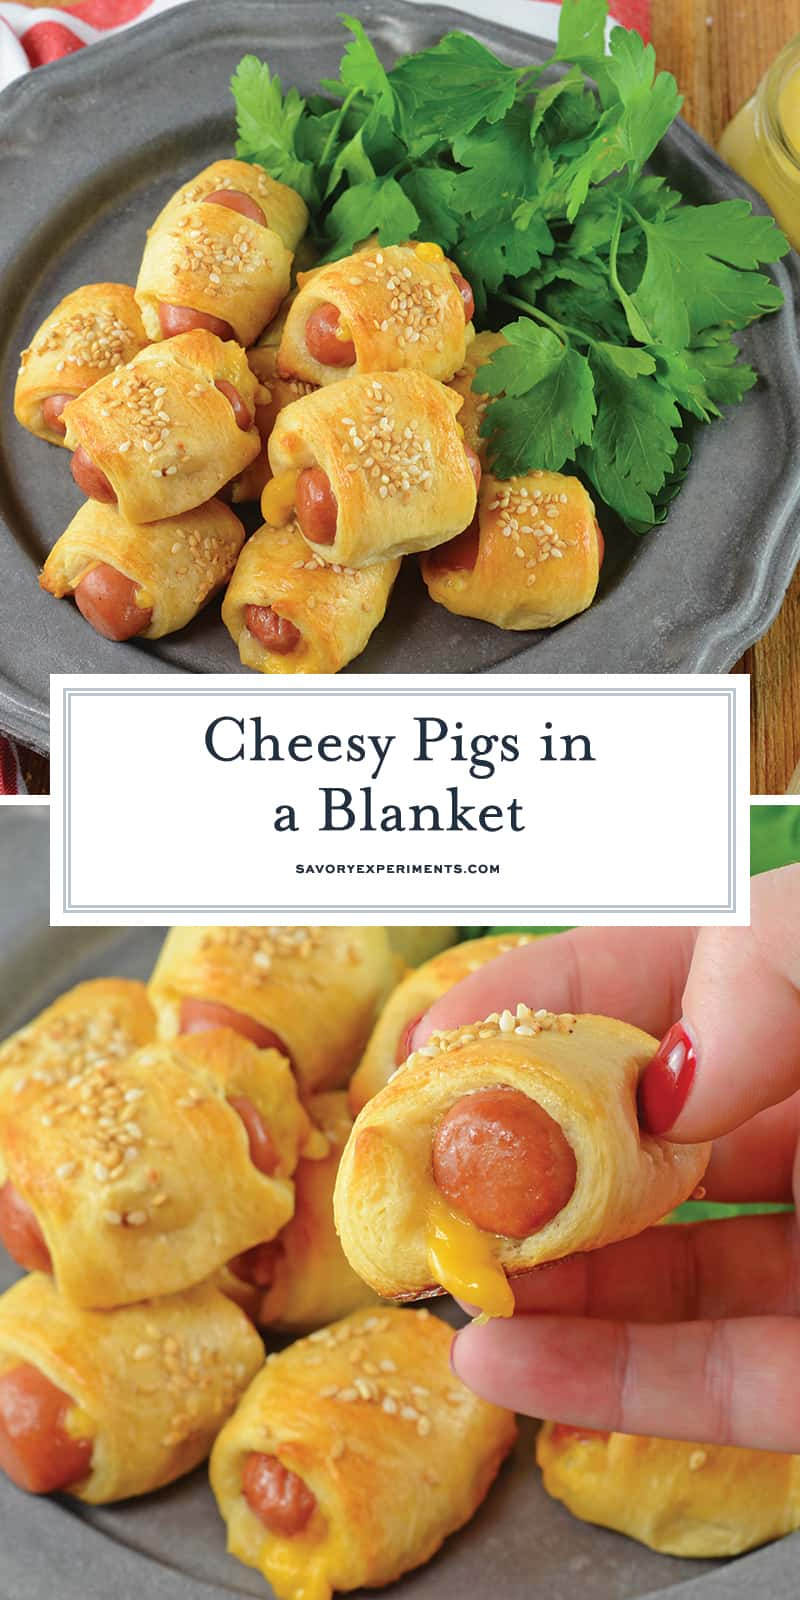 Pigs in a Blanket are great, but what if you made them into CHEESY pigs in a blanket? Serve with homemade creamy honey mustard sauce! #pigsinablanket www.savoryexperiments.com